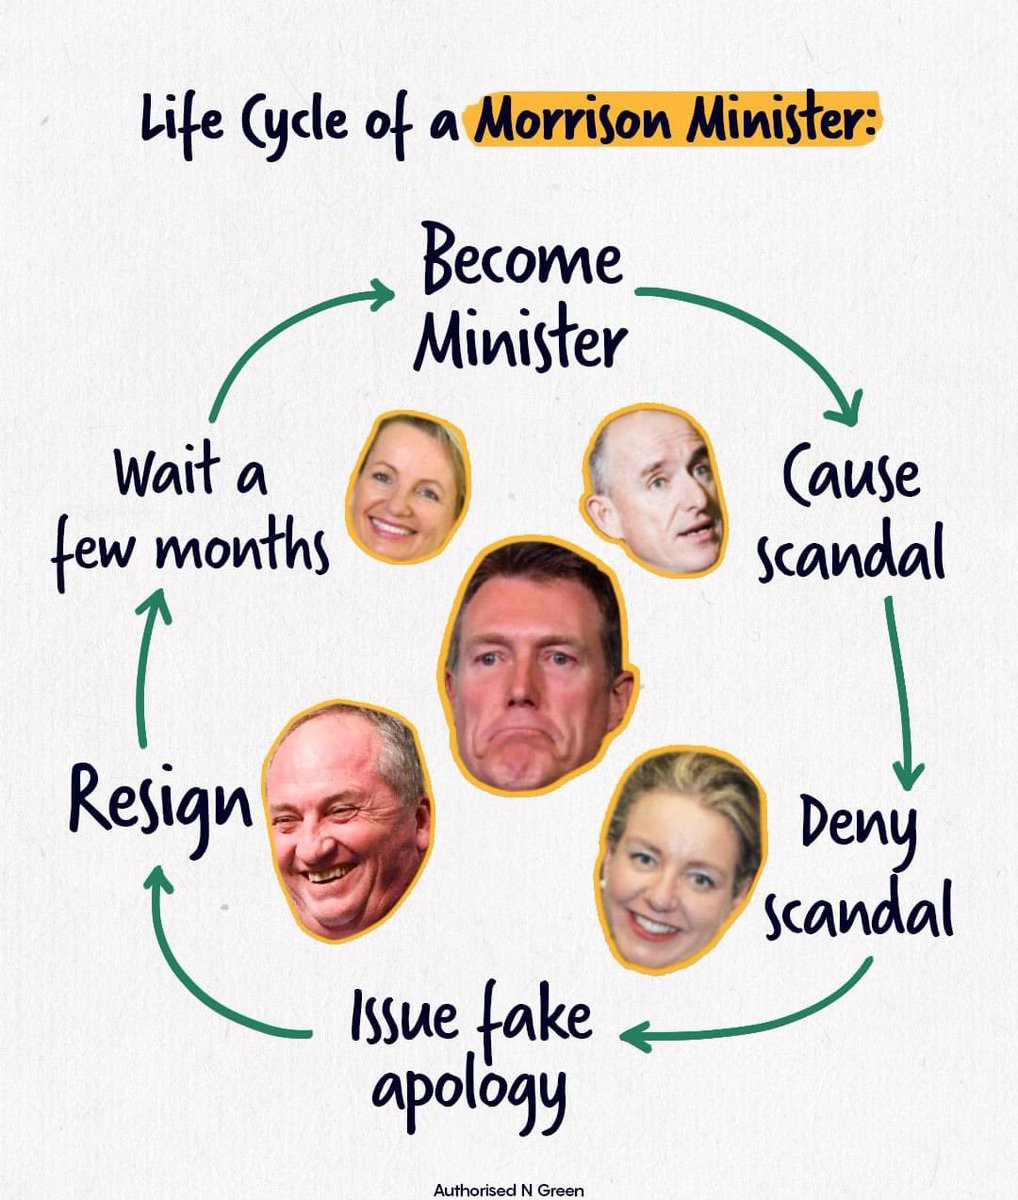 Barnaby Joyce said Porter had a 'bad day at the wicket' and 'should be given a future chance at some senior role'. When is the last time anyone from this Government was actually held to account under Scott Morrison? #auspol